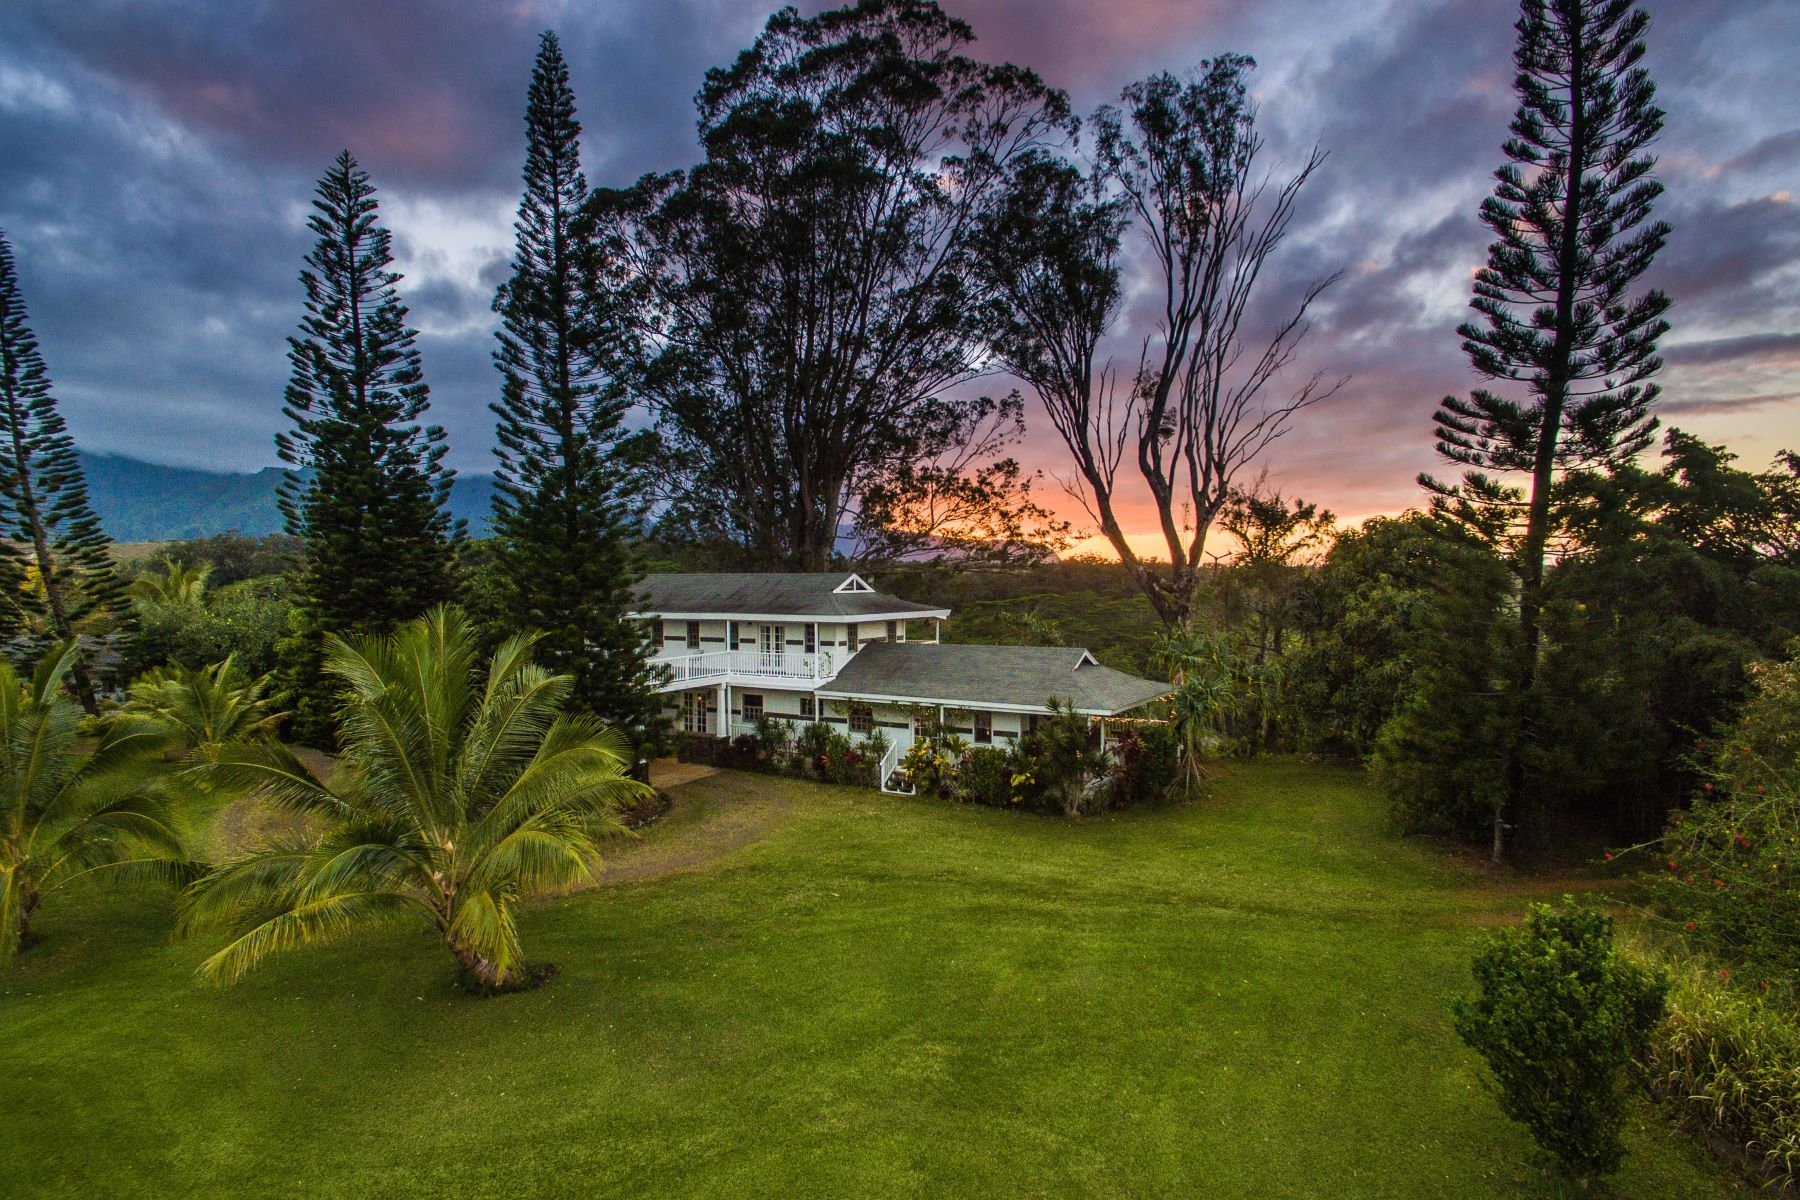 Maison unifamiliale pour l Vente à Kauai 5-Acre Multi-Family Estate with Mountain, Waterfall, Sunset & Valley Views 5150 Kahiliholo Road #A Kilauea, Hawaii 96754 États-Unis